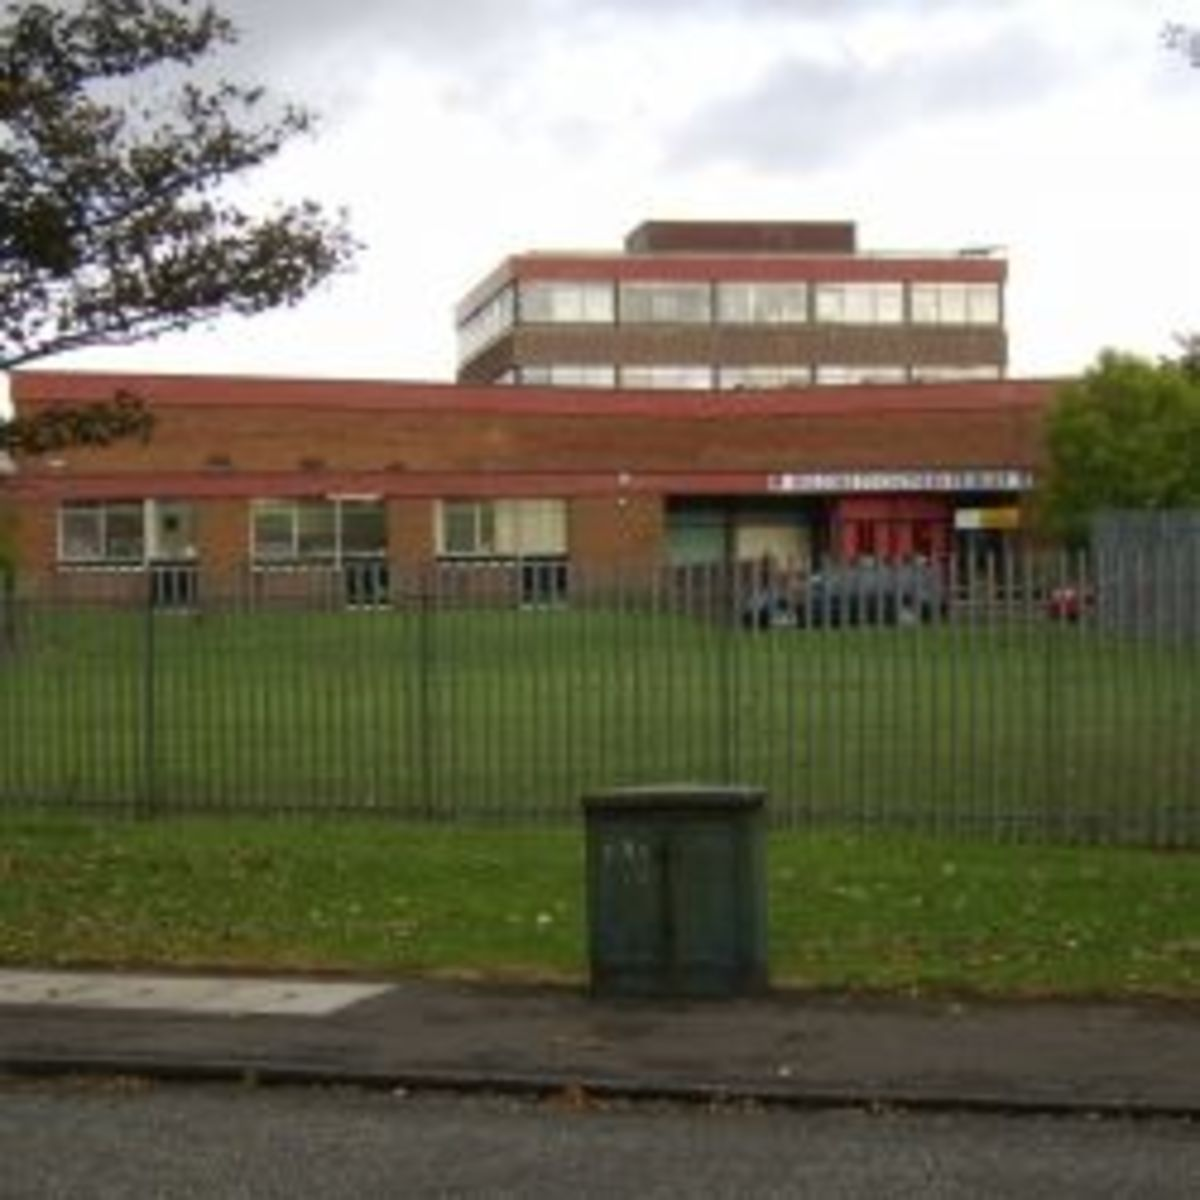 Coltness Primary School